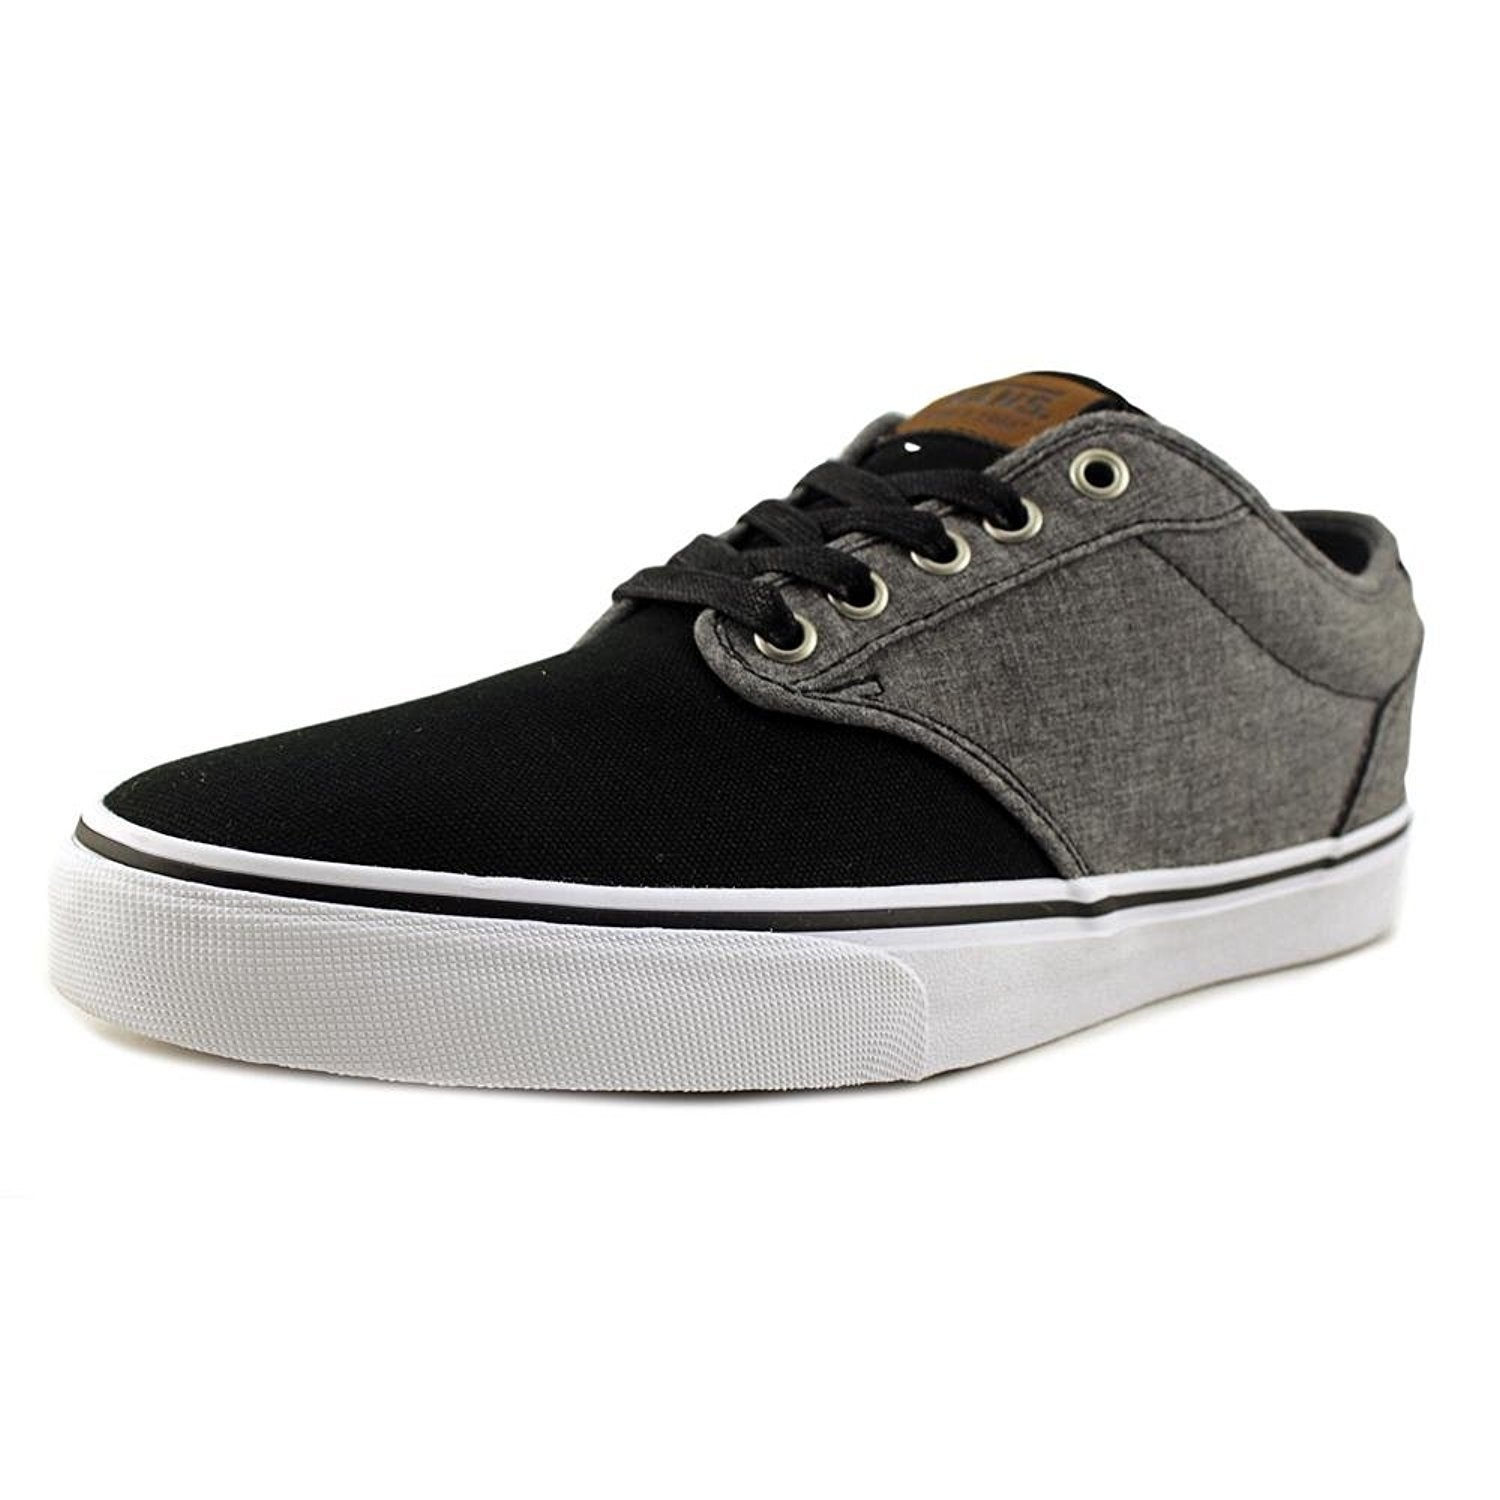 Vans Atwood Deluxe Men US 9 Black Sneakers - (mixed)black/grey